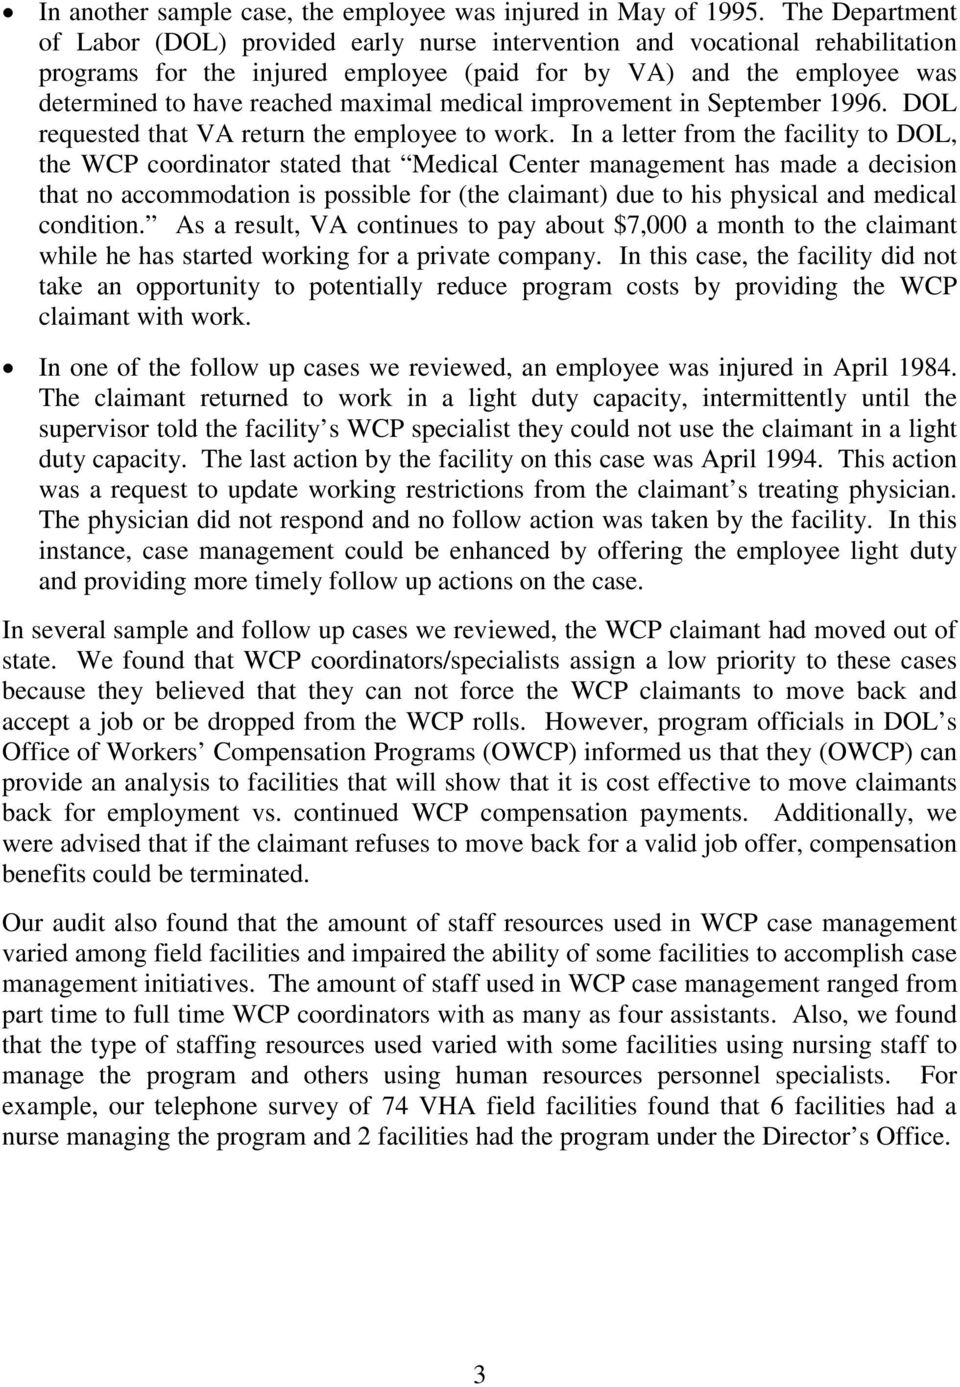 maximal medical improvement in September 1996. DOL requested that VA return the employee to work.